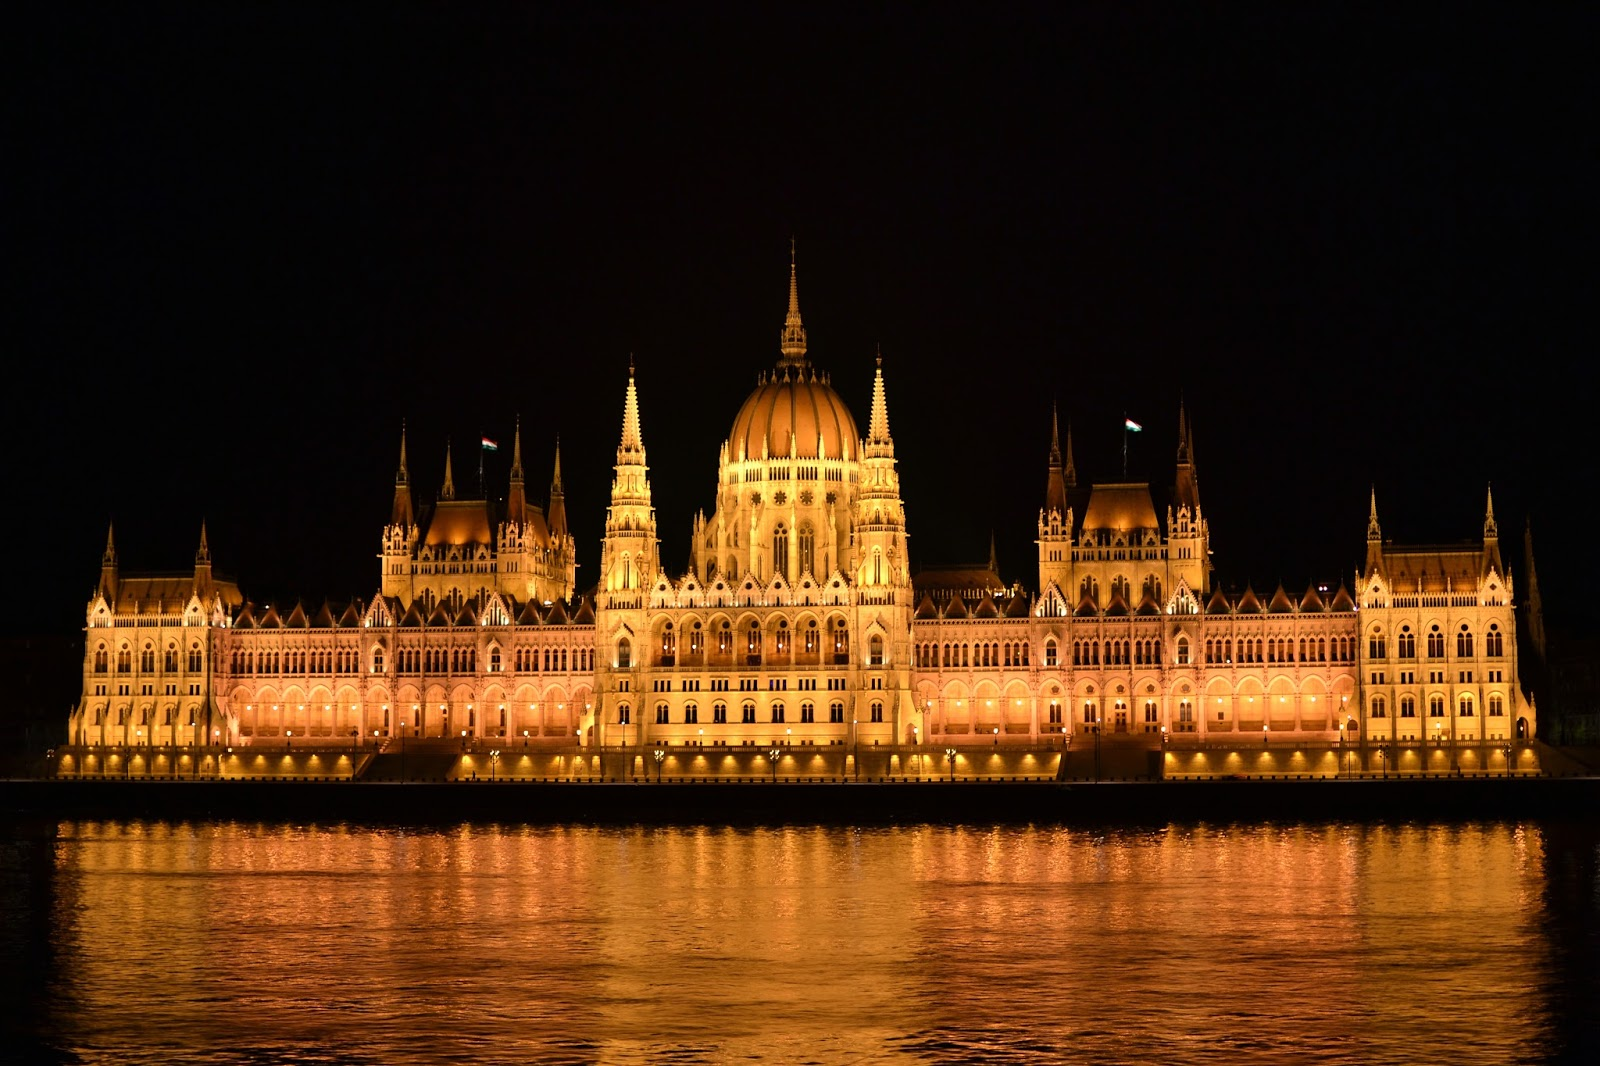 Budapest, photography, night time, architecture, travel, blog, adventure, exploration, chain bridge, Danube, funicular, buda castle, buda hill, old, traditional, Matthias church, fisherman's bastion, Hungarian parliament, Hungary, statue of liberty, gellert hill, citadella, liberty bridge, green bridge, elizabeth bridge,